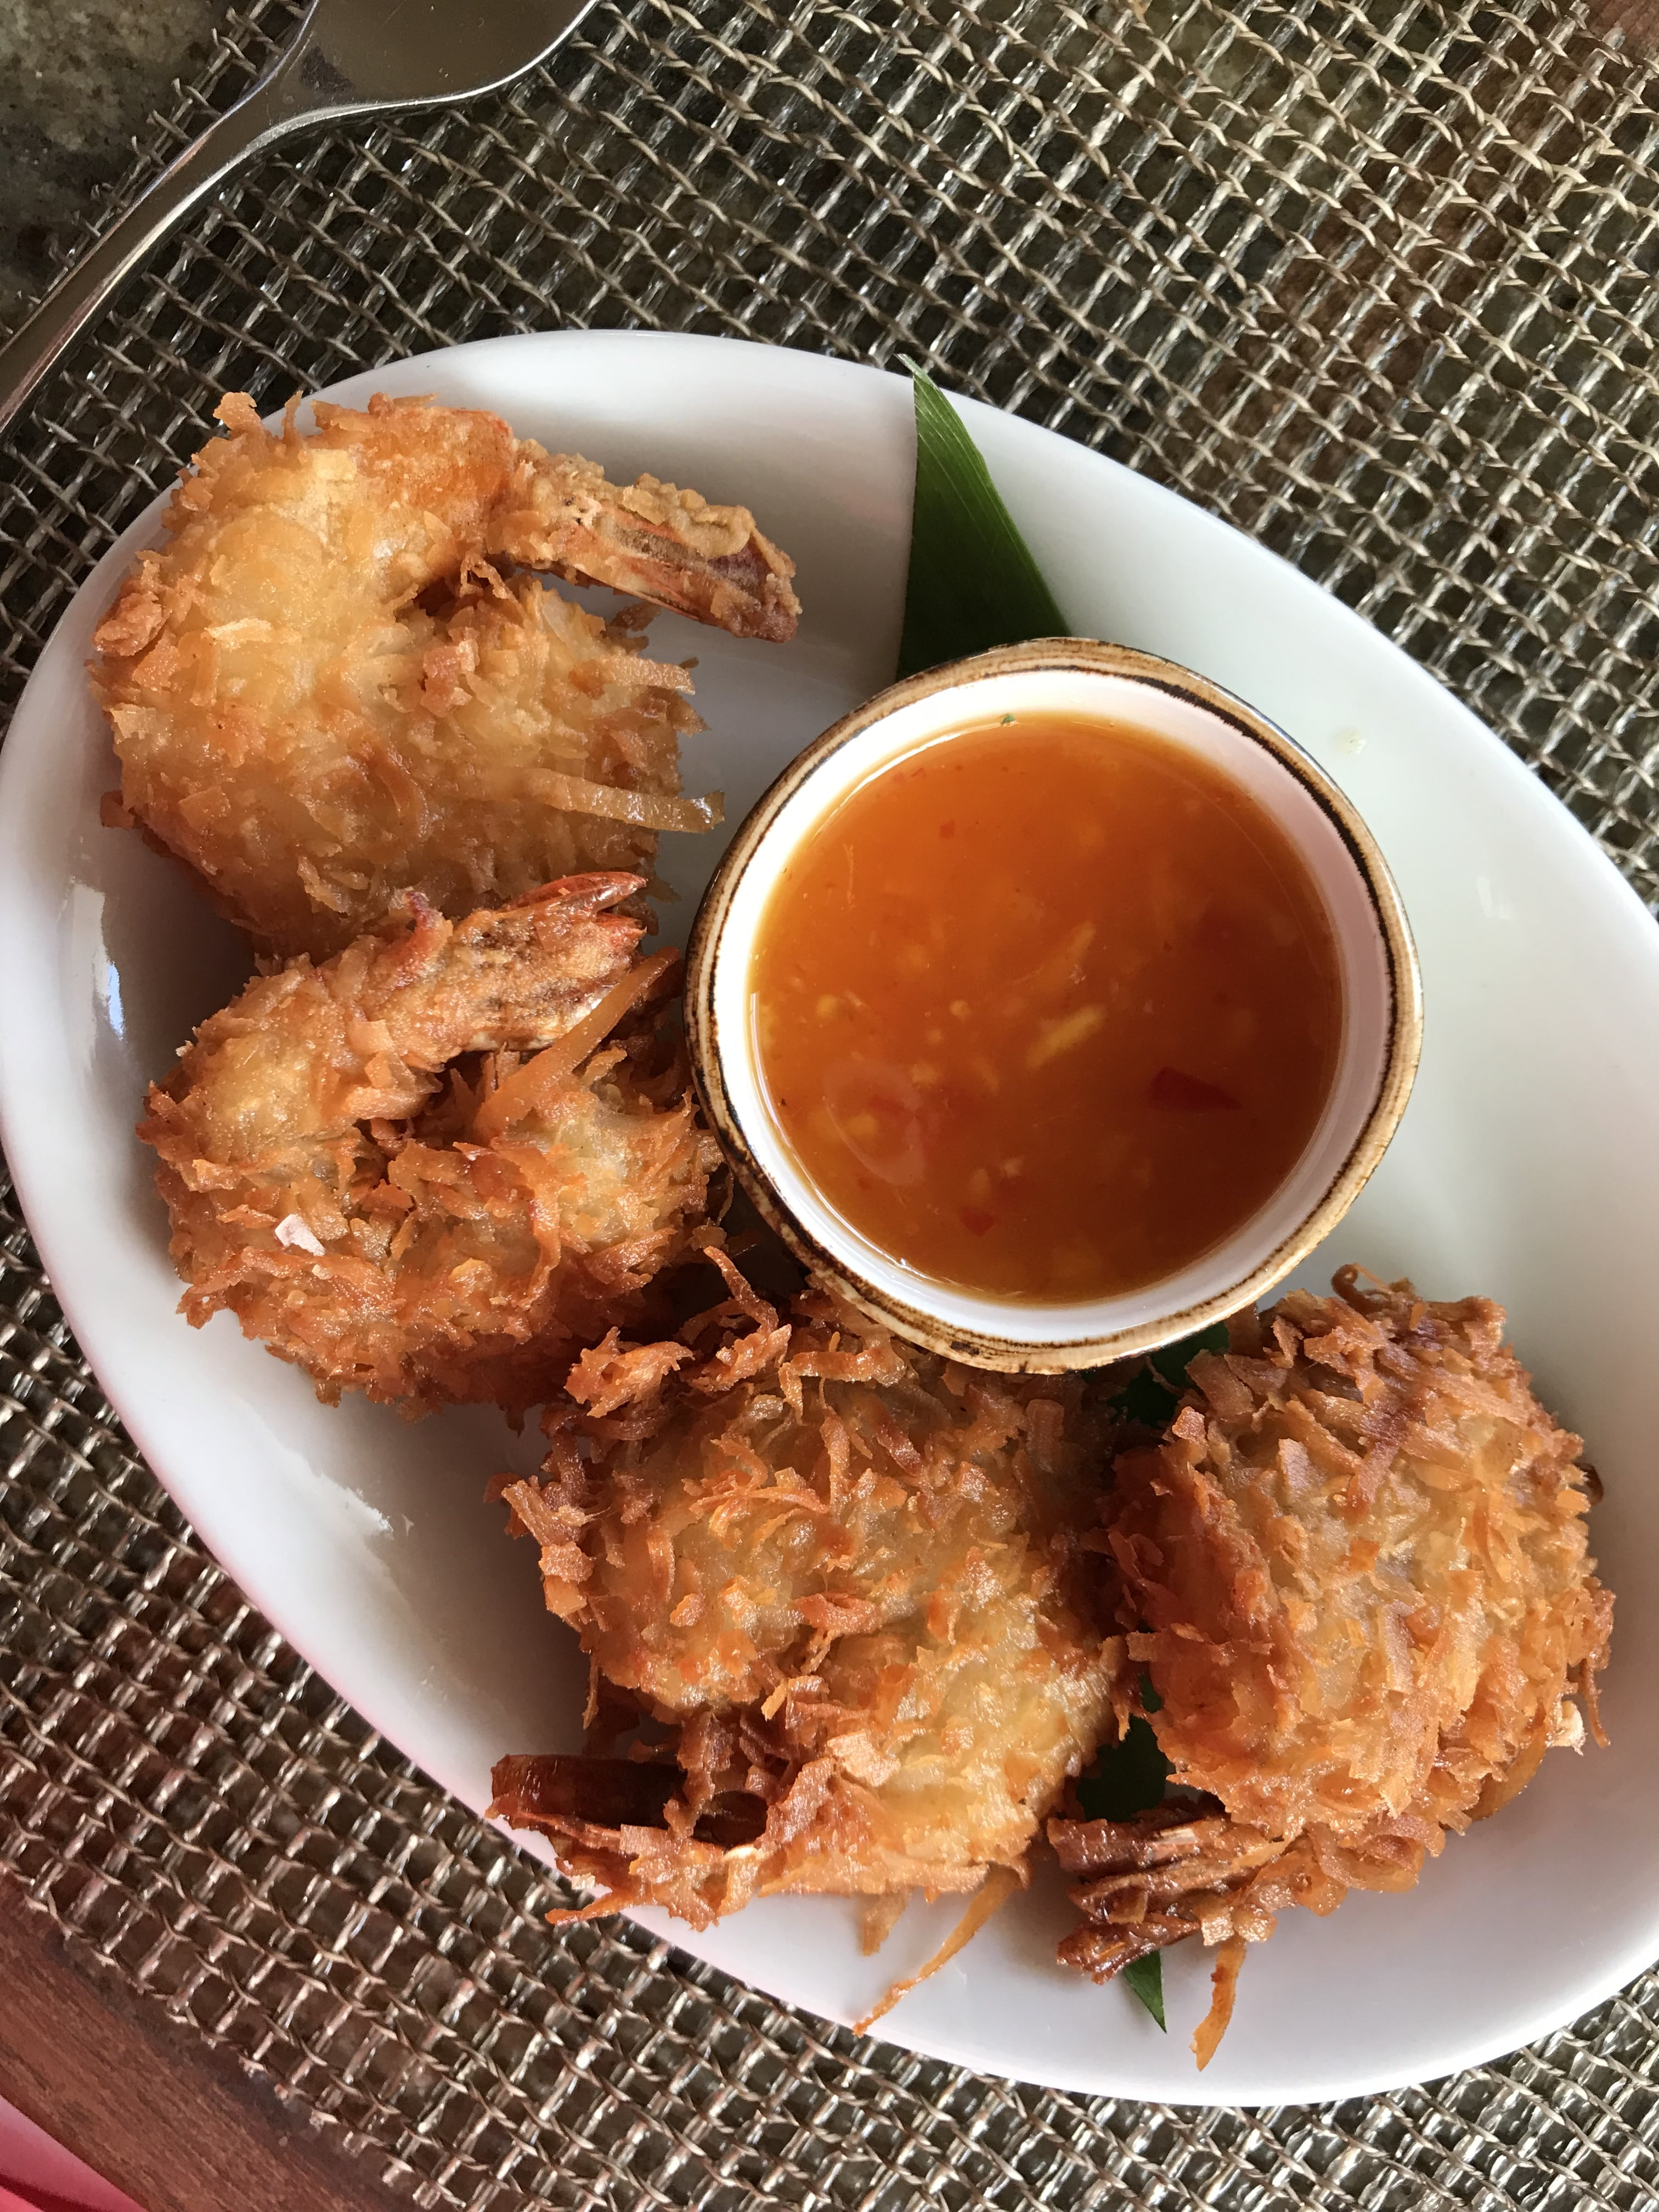 Eating At Halekulani's Restaurant House Without A Key, Four coconut shrimp with dipping sauce